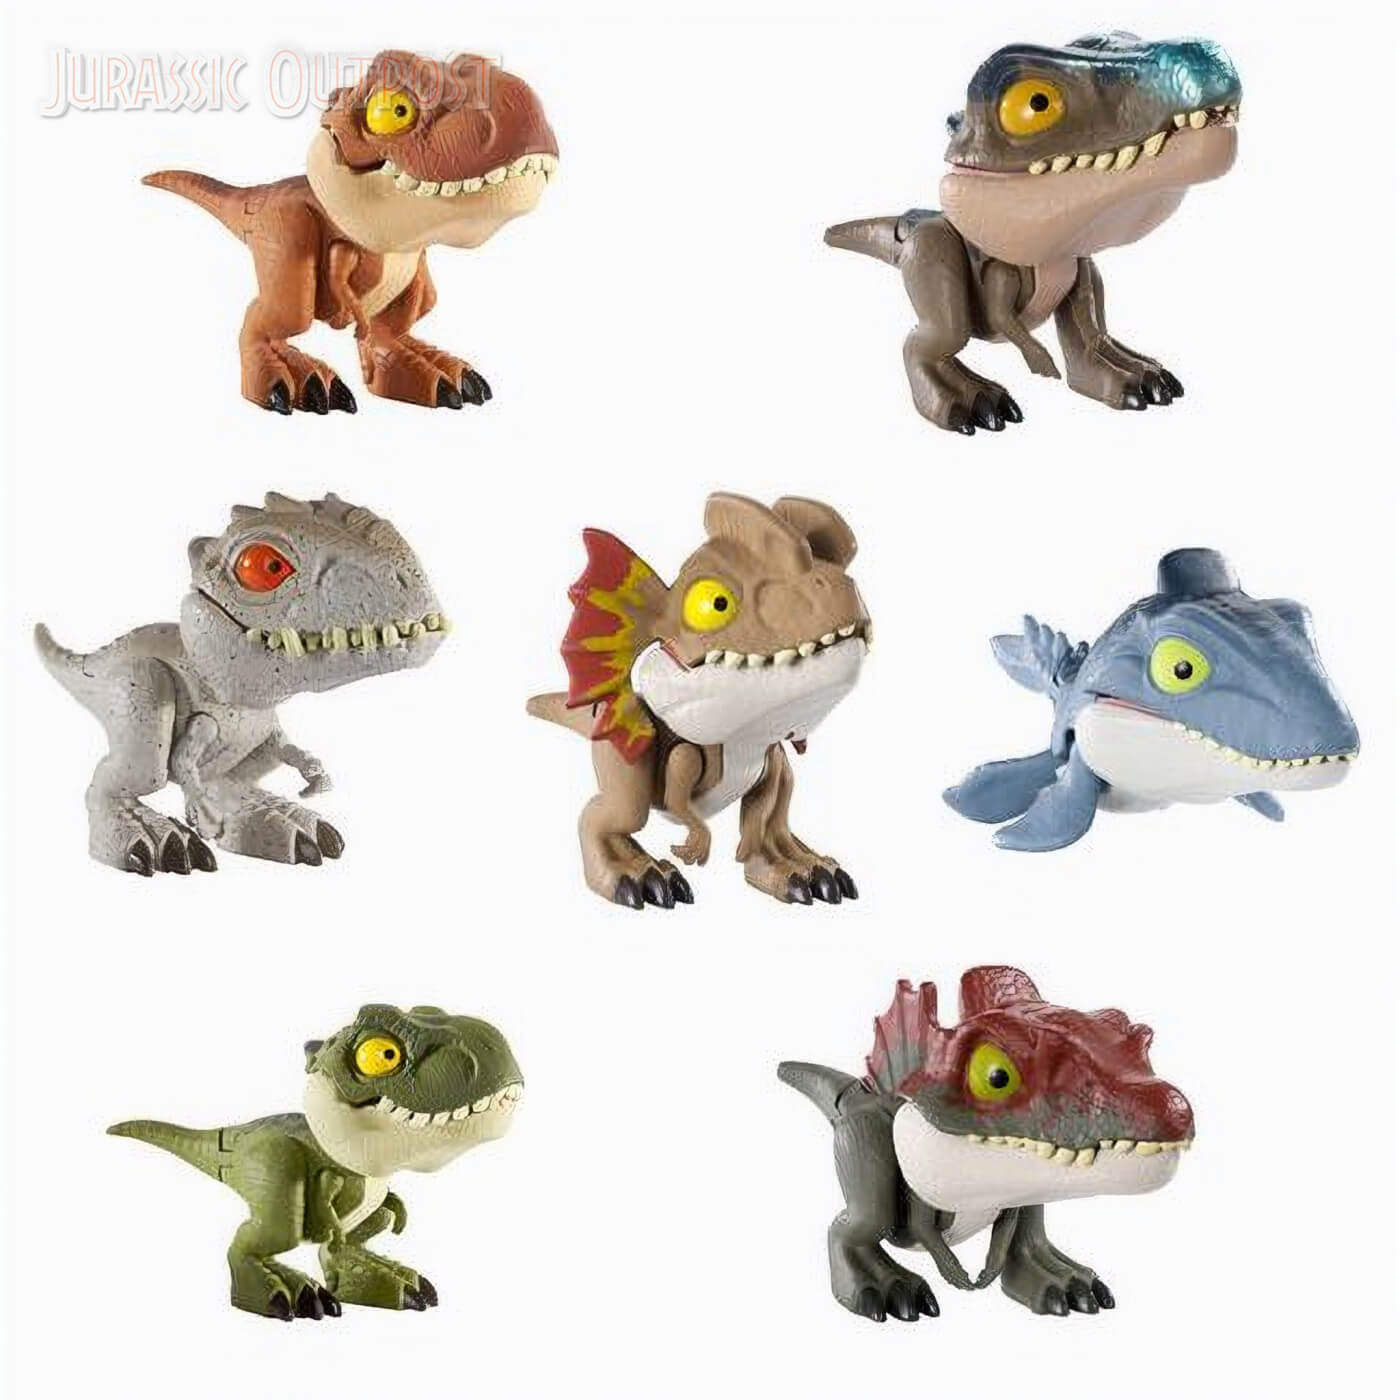 Huge Assortment Of Mattel S 2020 Jurassic World Primal Attack Toys Revealed Jurassic Outpost This set of 12 dinosaurs comes with a book that highlights facts about each type including habitat, diet, size, and more. jurassic outpost